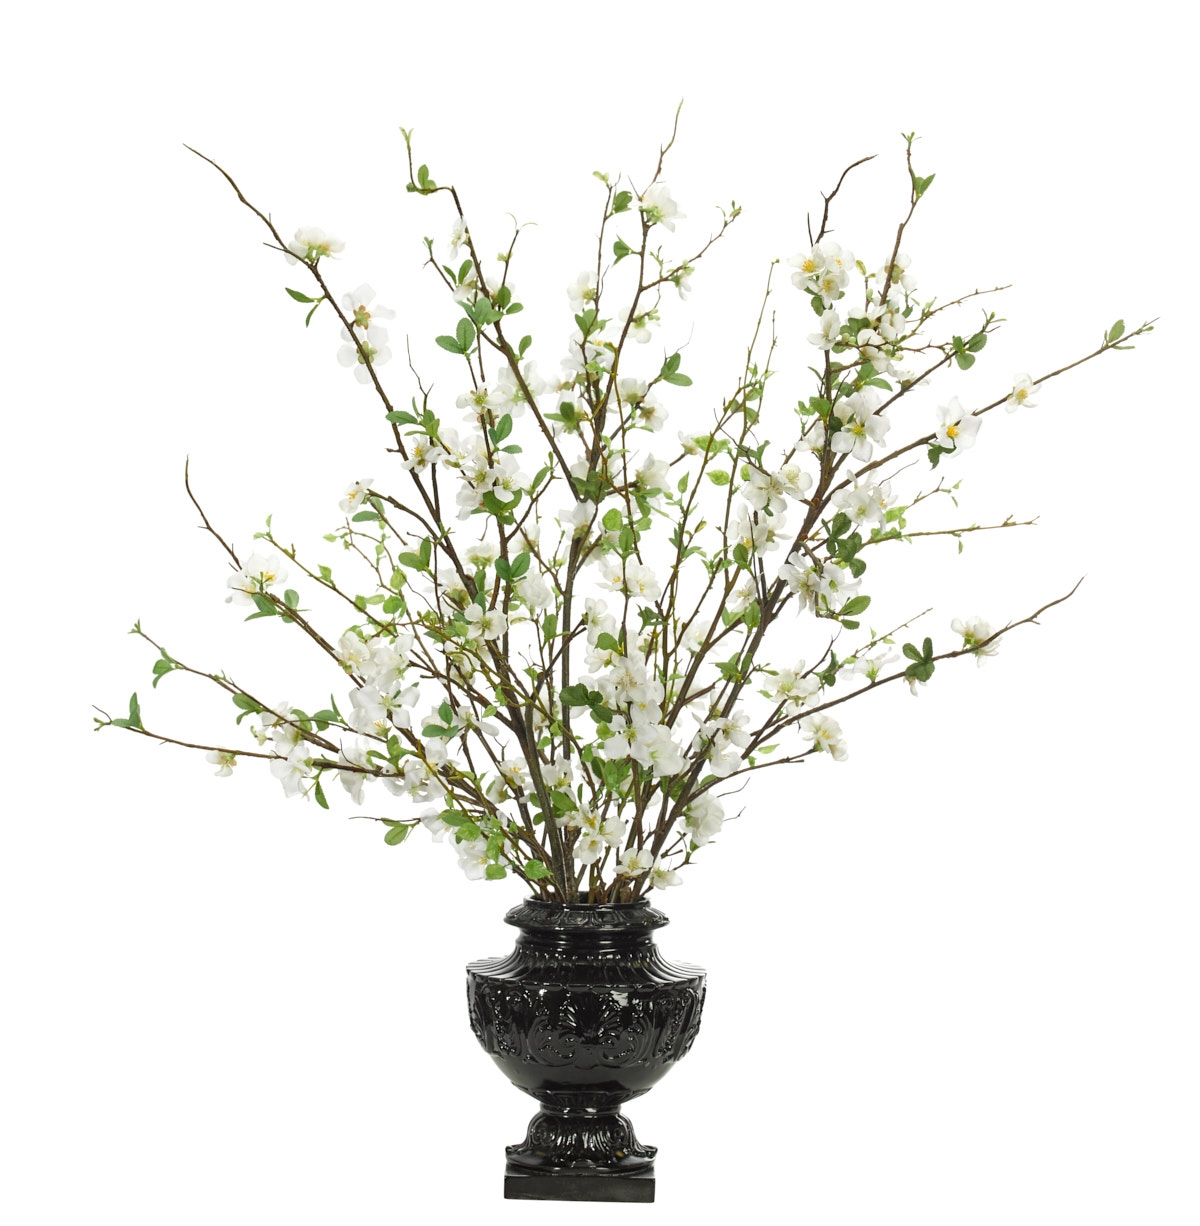 Quince Blossom, White, Pedestal Urn Black, 30wx27dx36h